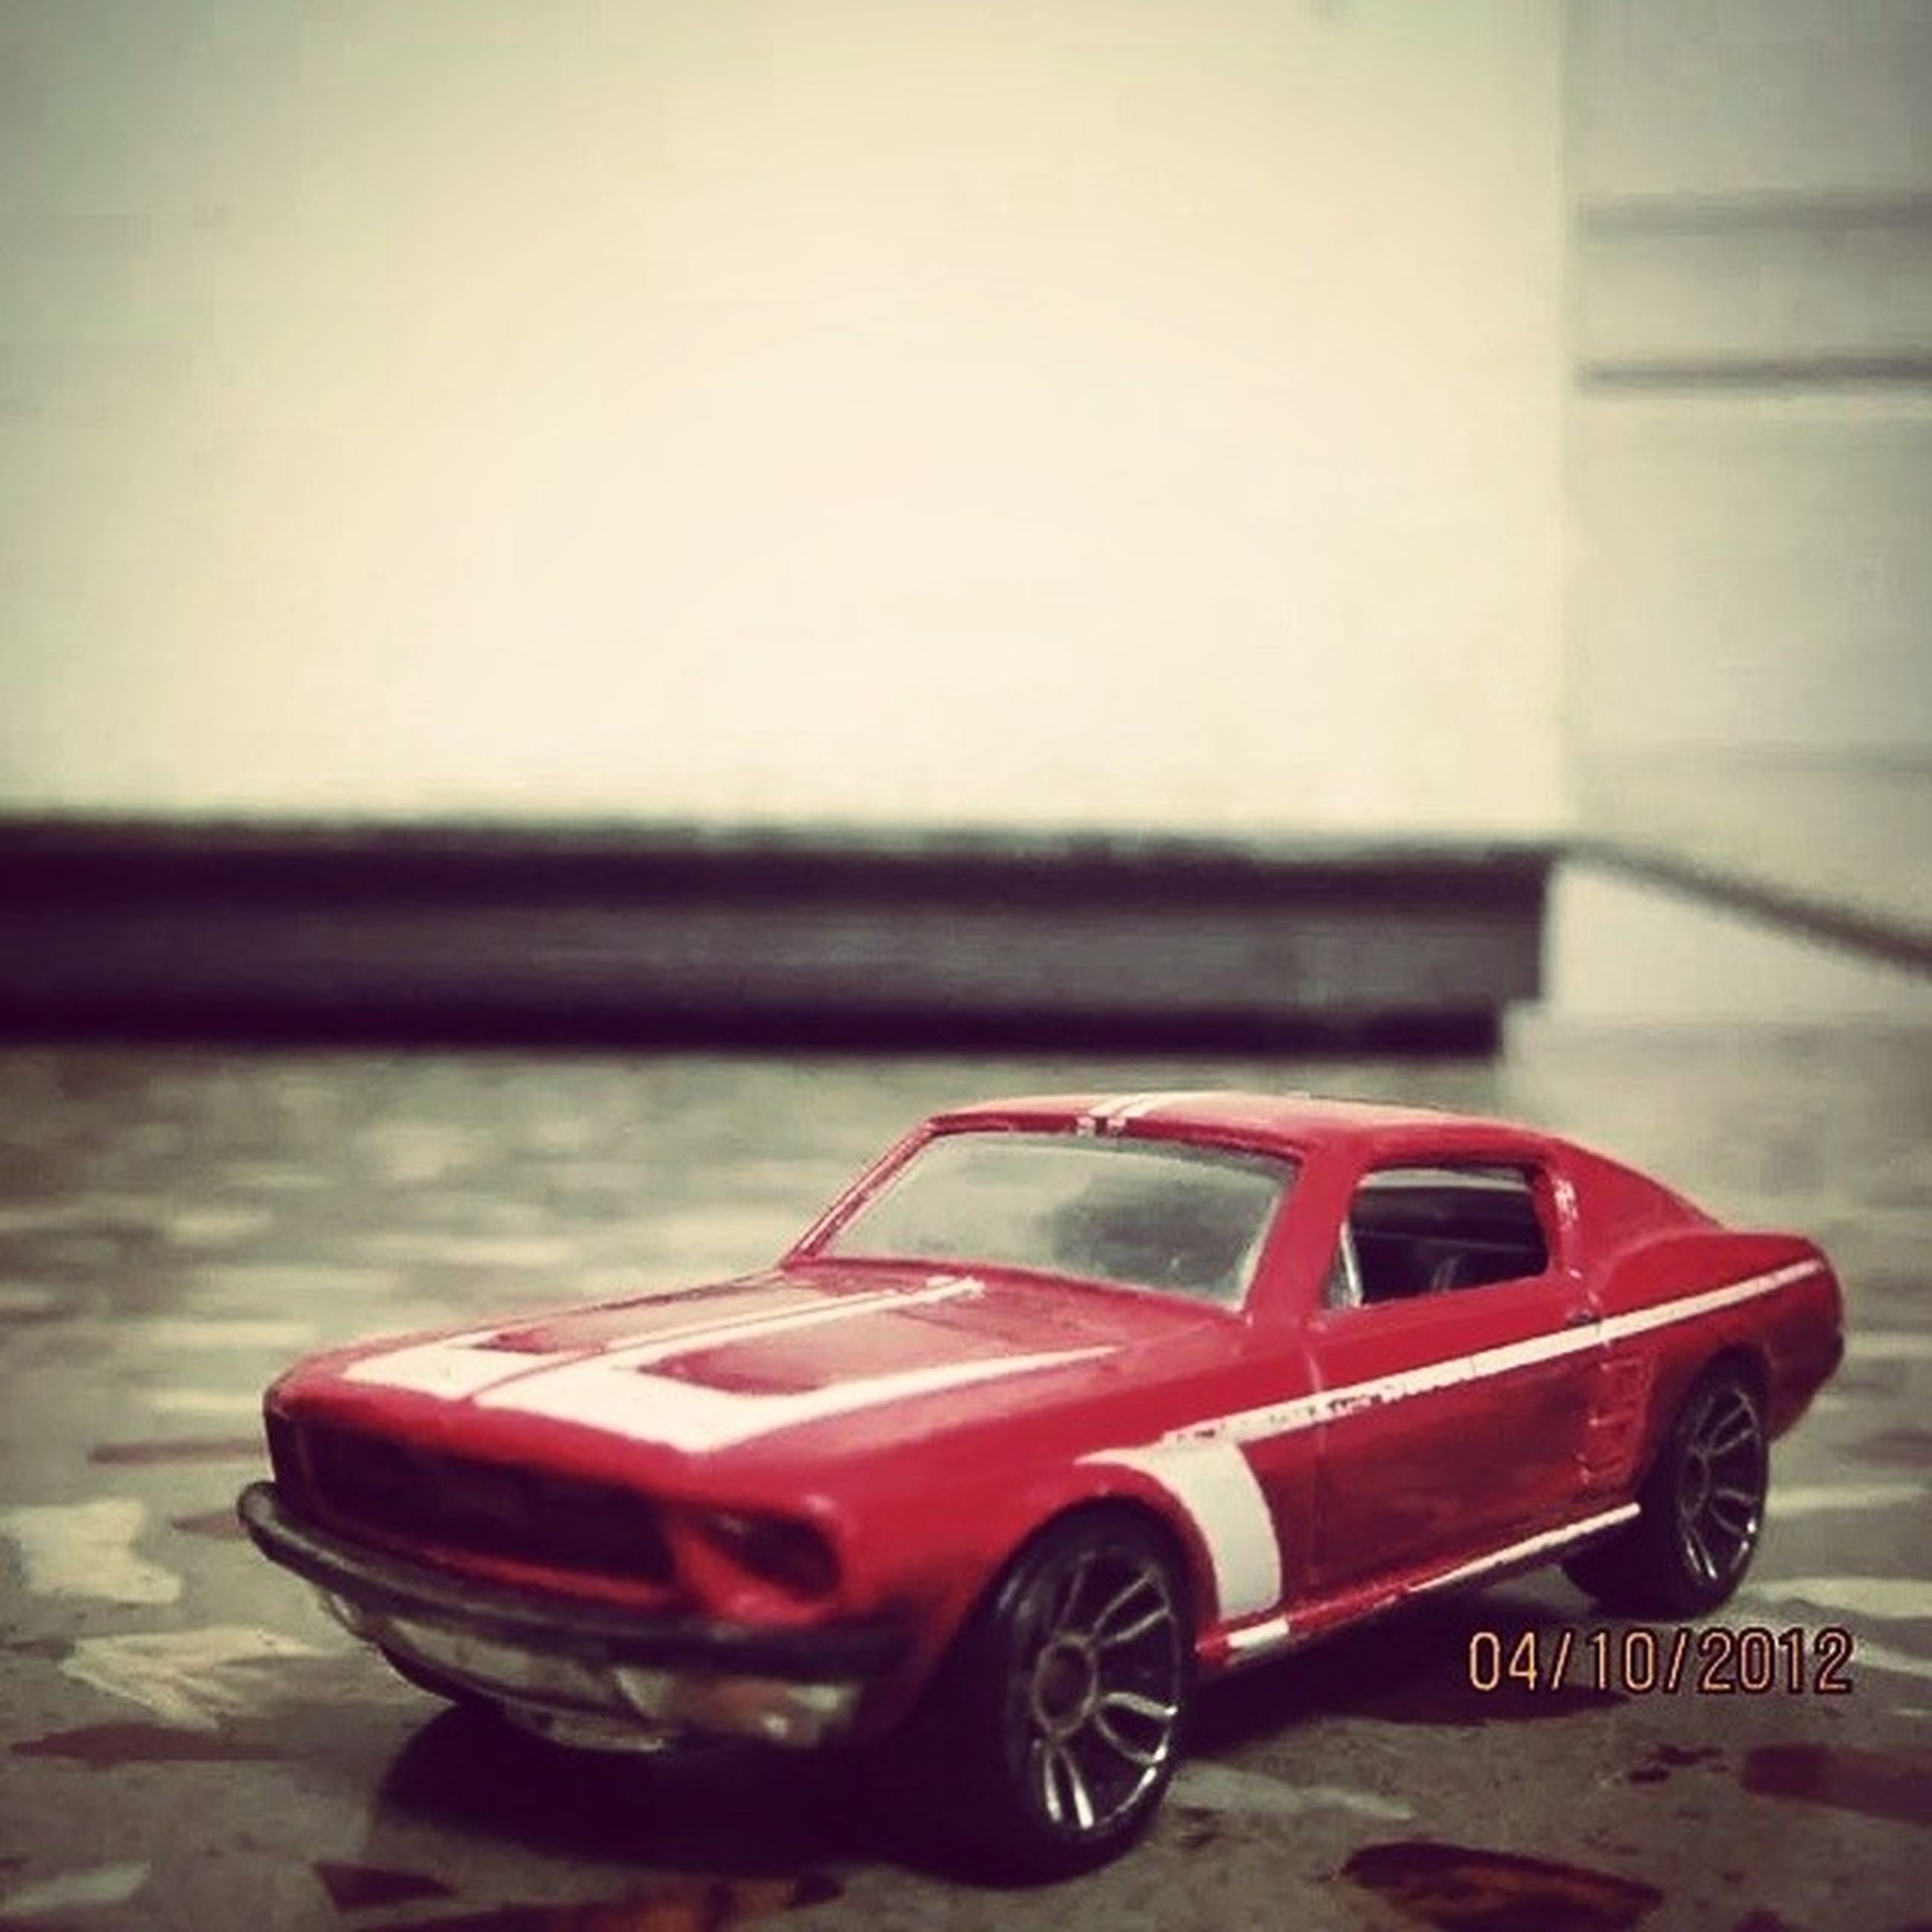 transportation, mode of transport, red, land vehicle, car, close-up, focus on foreground, stationary, no people, day, parked, parking, outdoors, metal, street, part of, wall - building feature, selective focus, road, bicycle